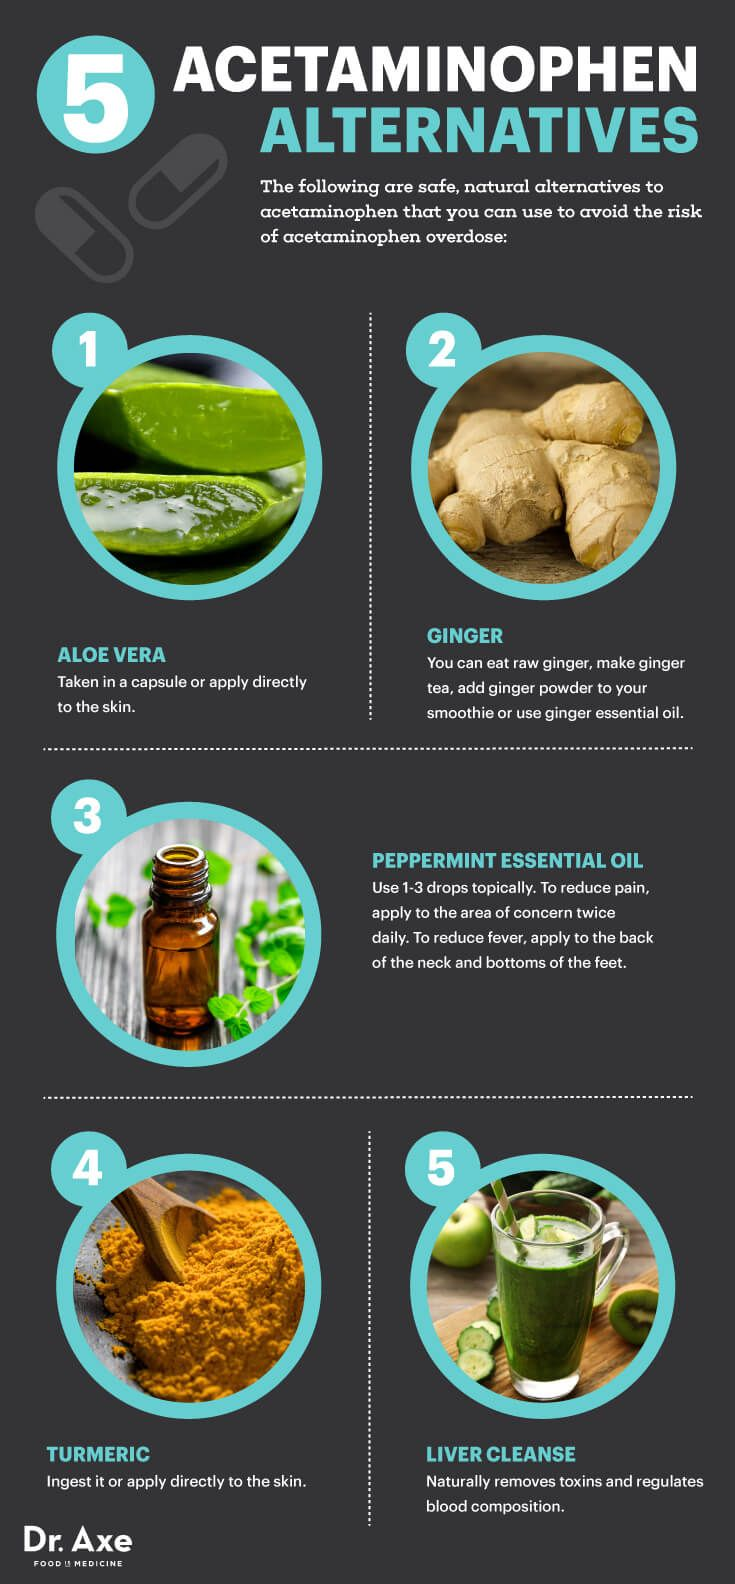 How to Avoid Acetaminophen Overdose-5 Natural Alternatives